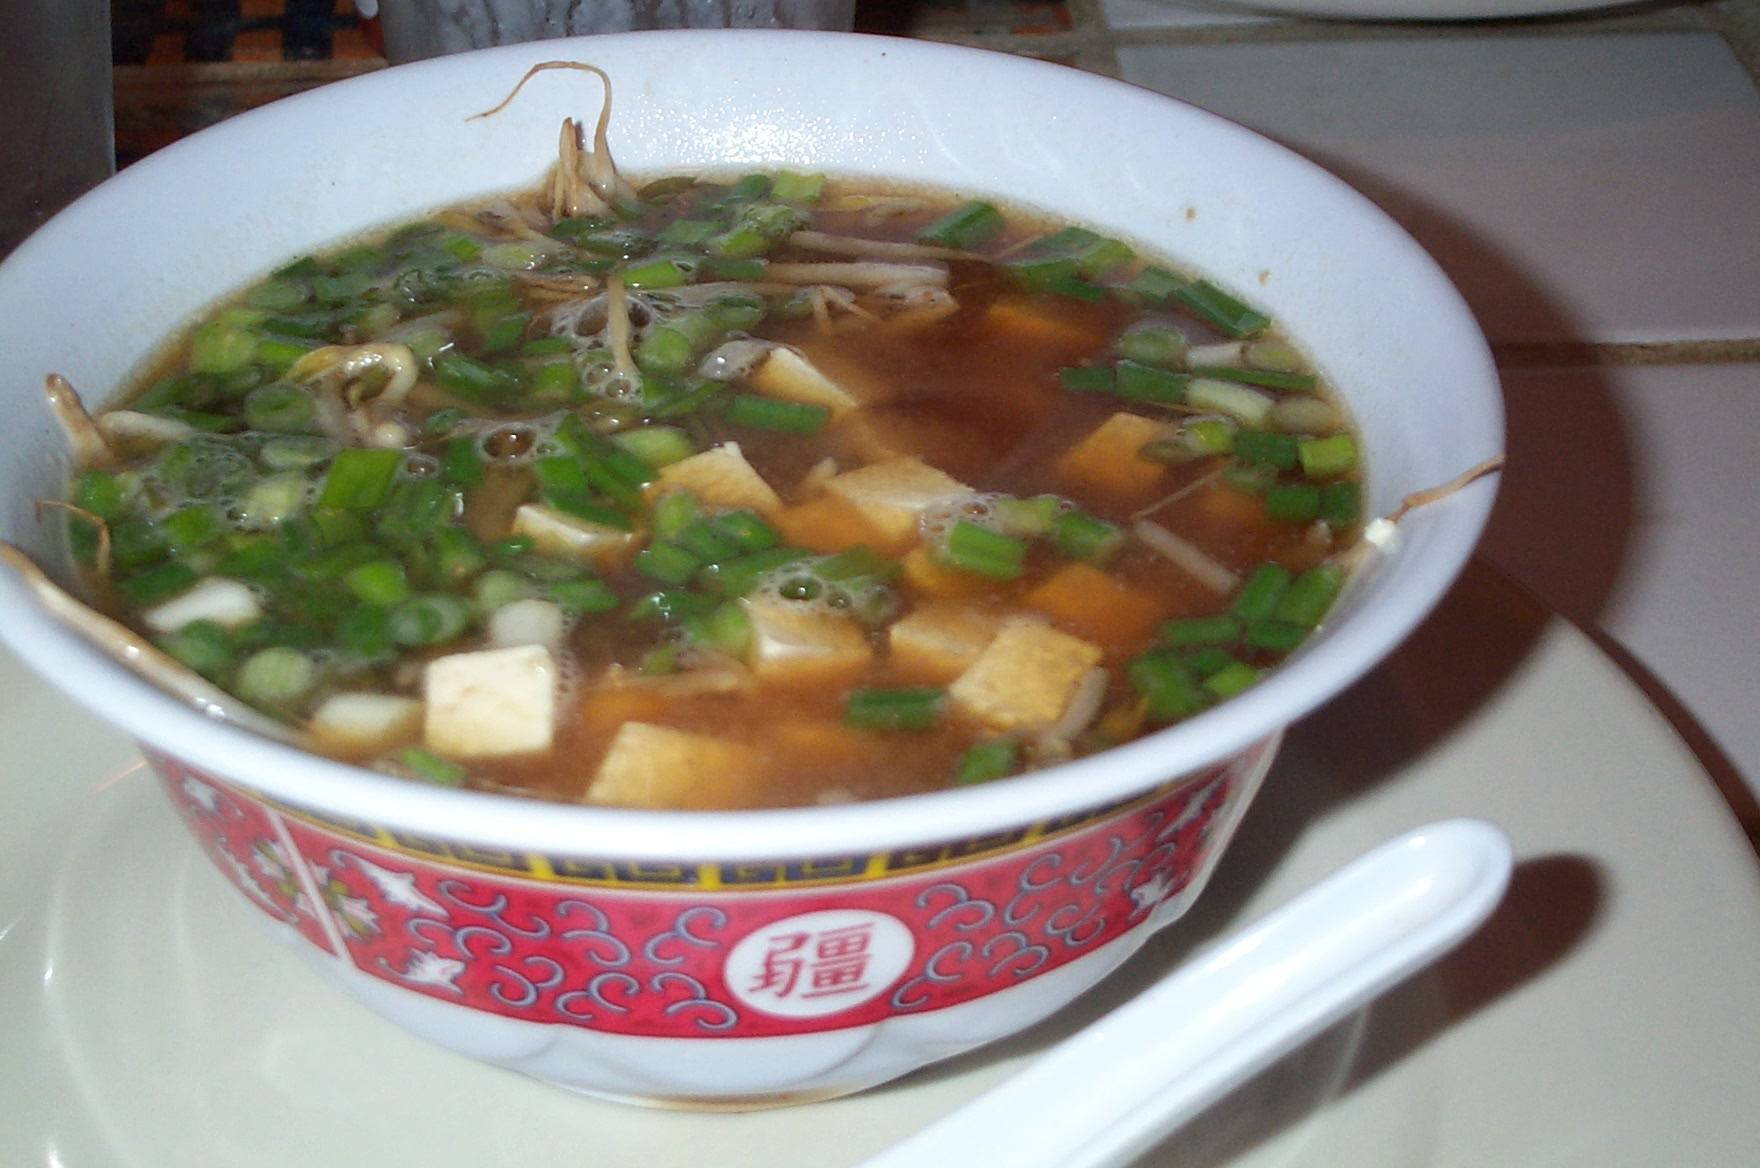 File:Miso soup.jpg - Wikipedia, the free encyclopedia